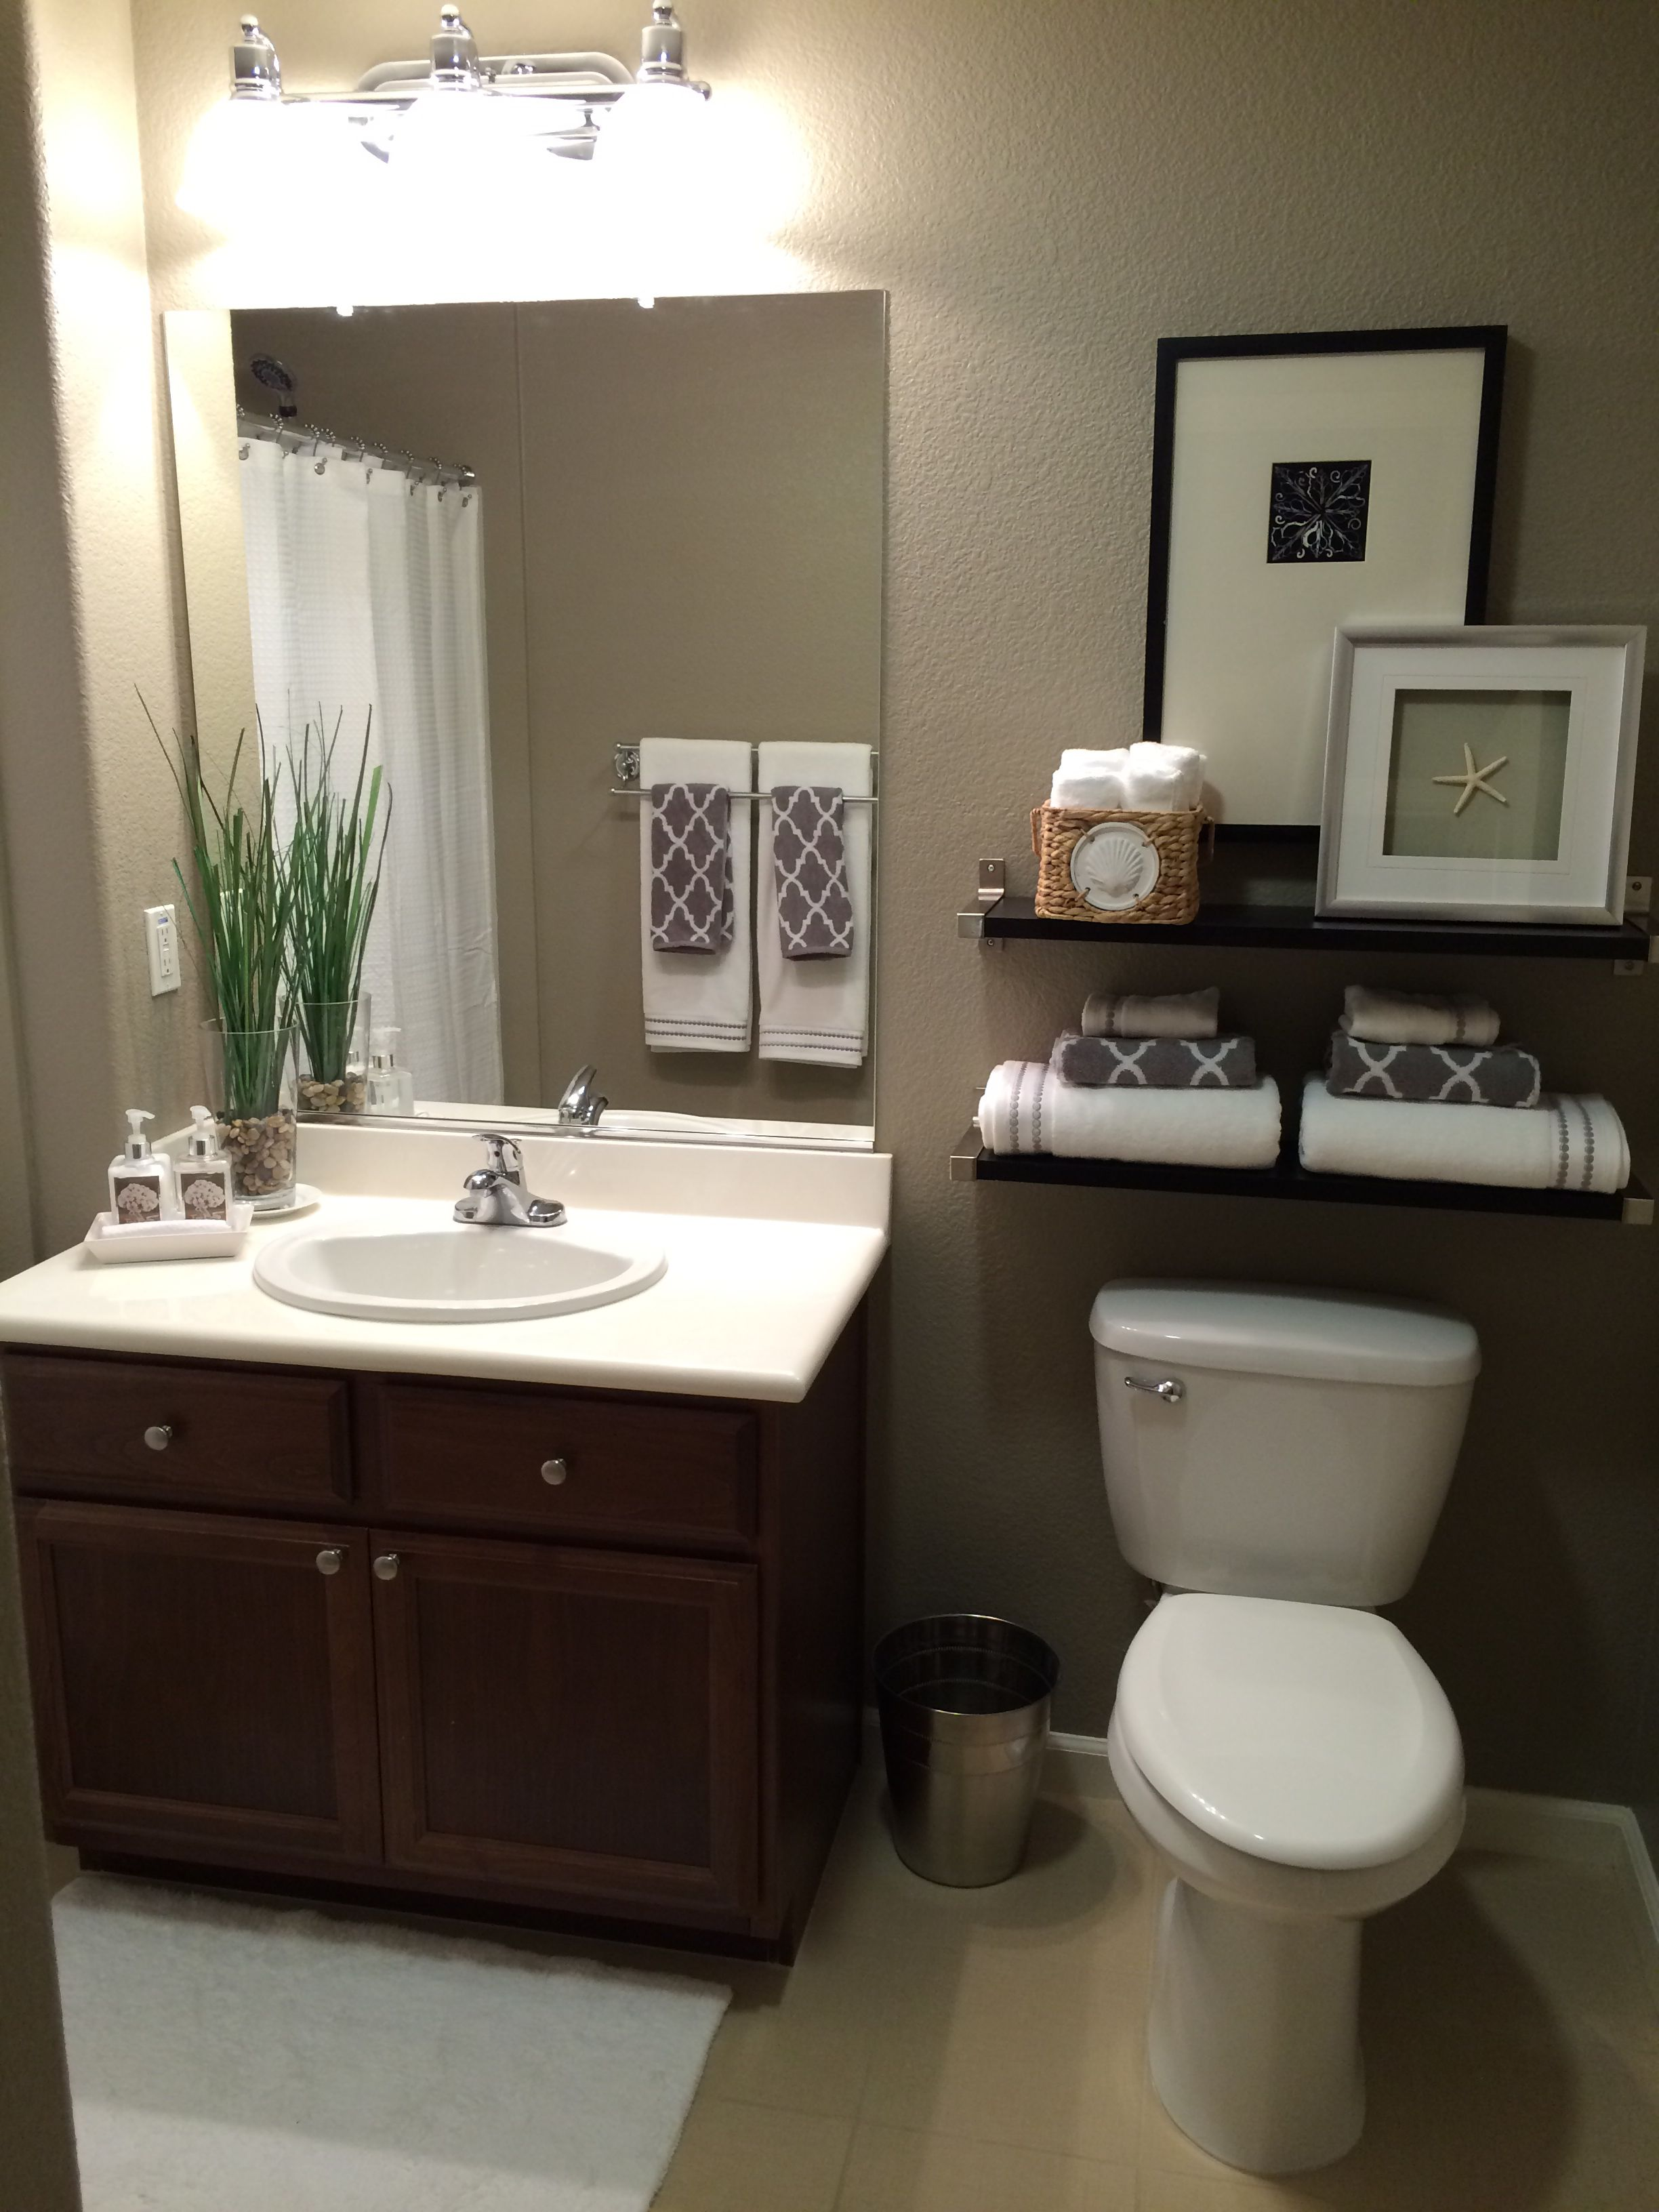 Guest Bath Paint Color Is Taupe Tone By Sherwin Williams Guest Bathroom Decor Small Bathroom Ideas On A Budget Modern Bathroom Decor